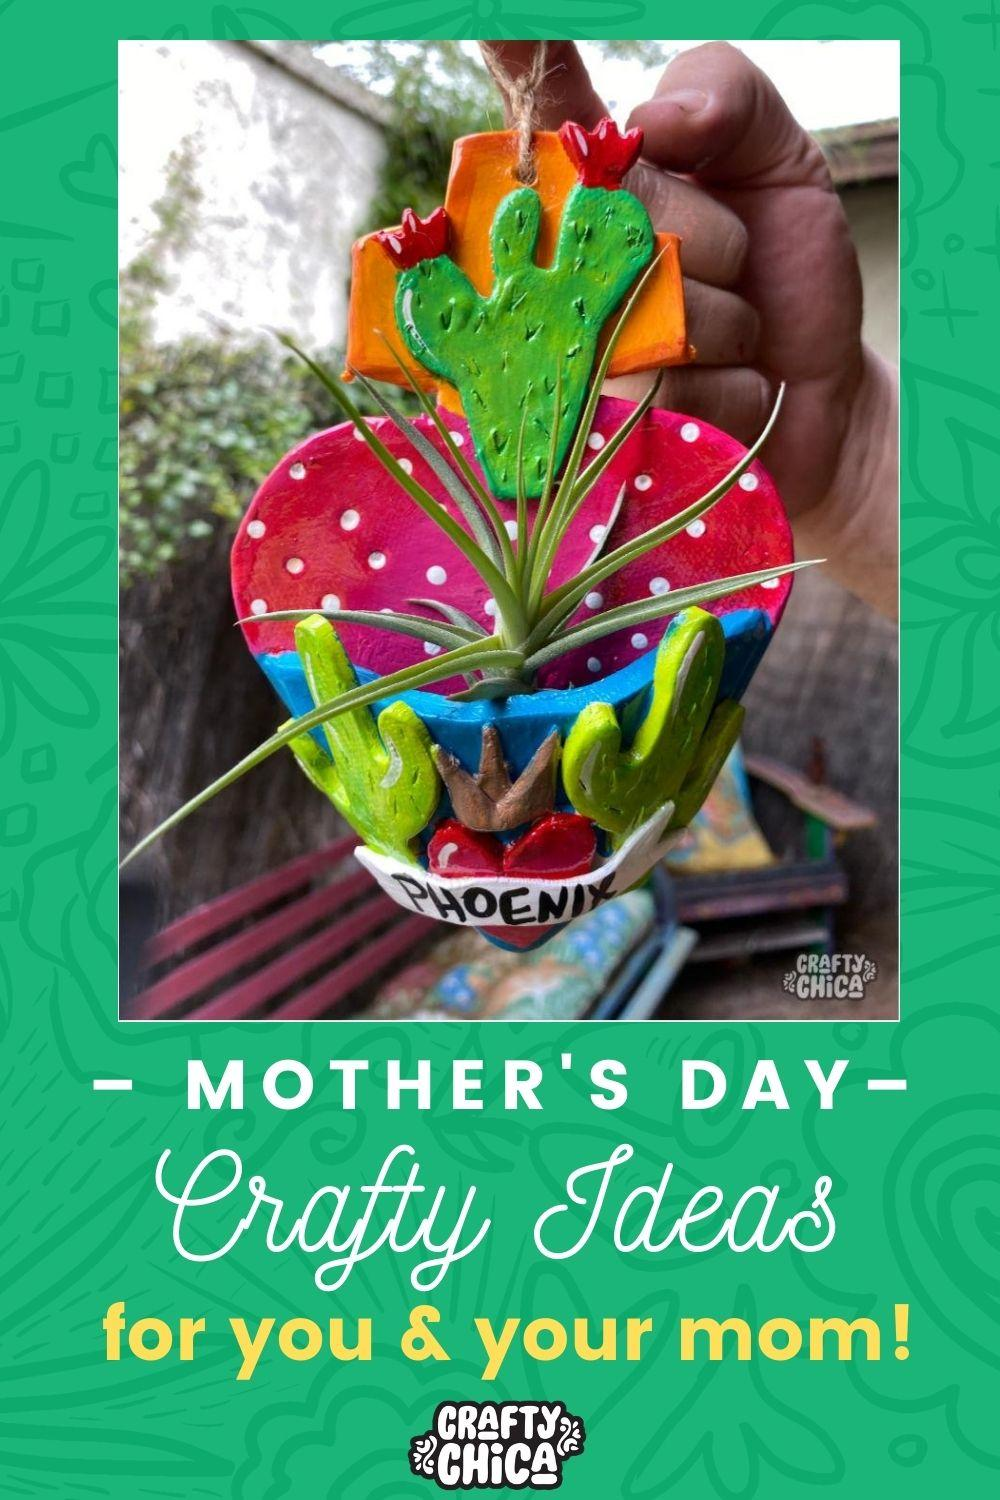 Crafts to make with your mom